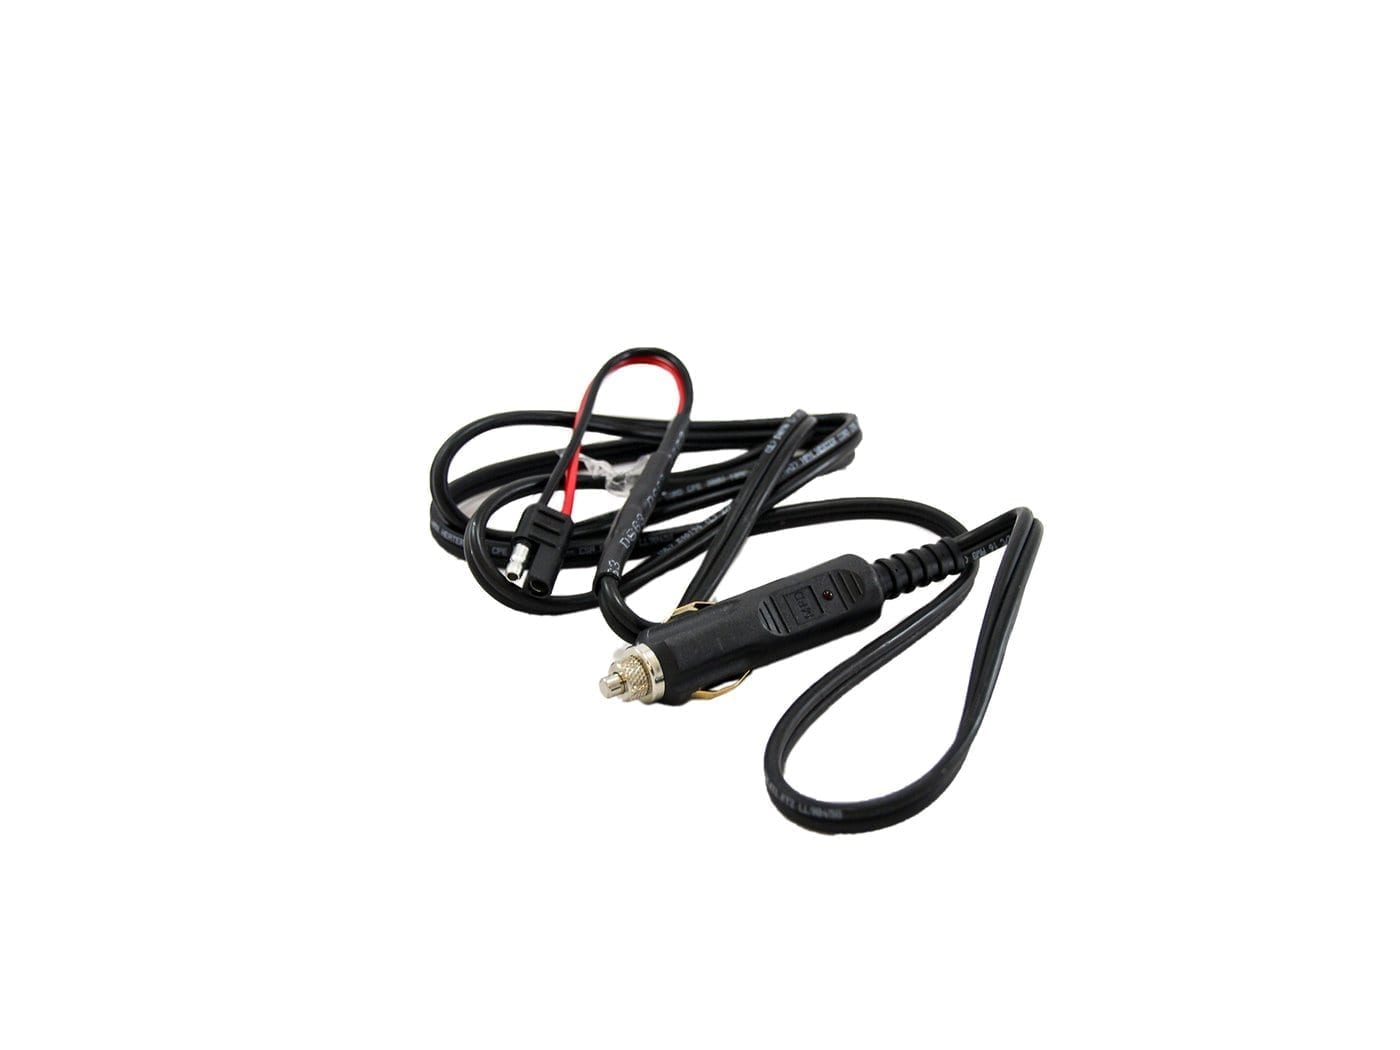 Heavy Duty 20a Cigarette Lighter Power Cable For Motorola